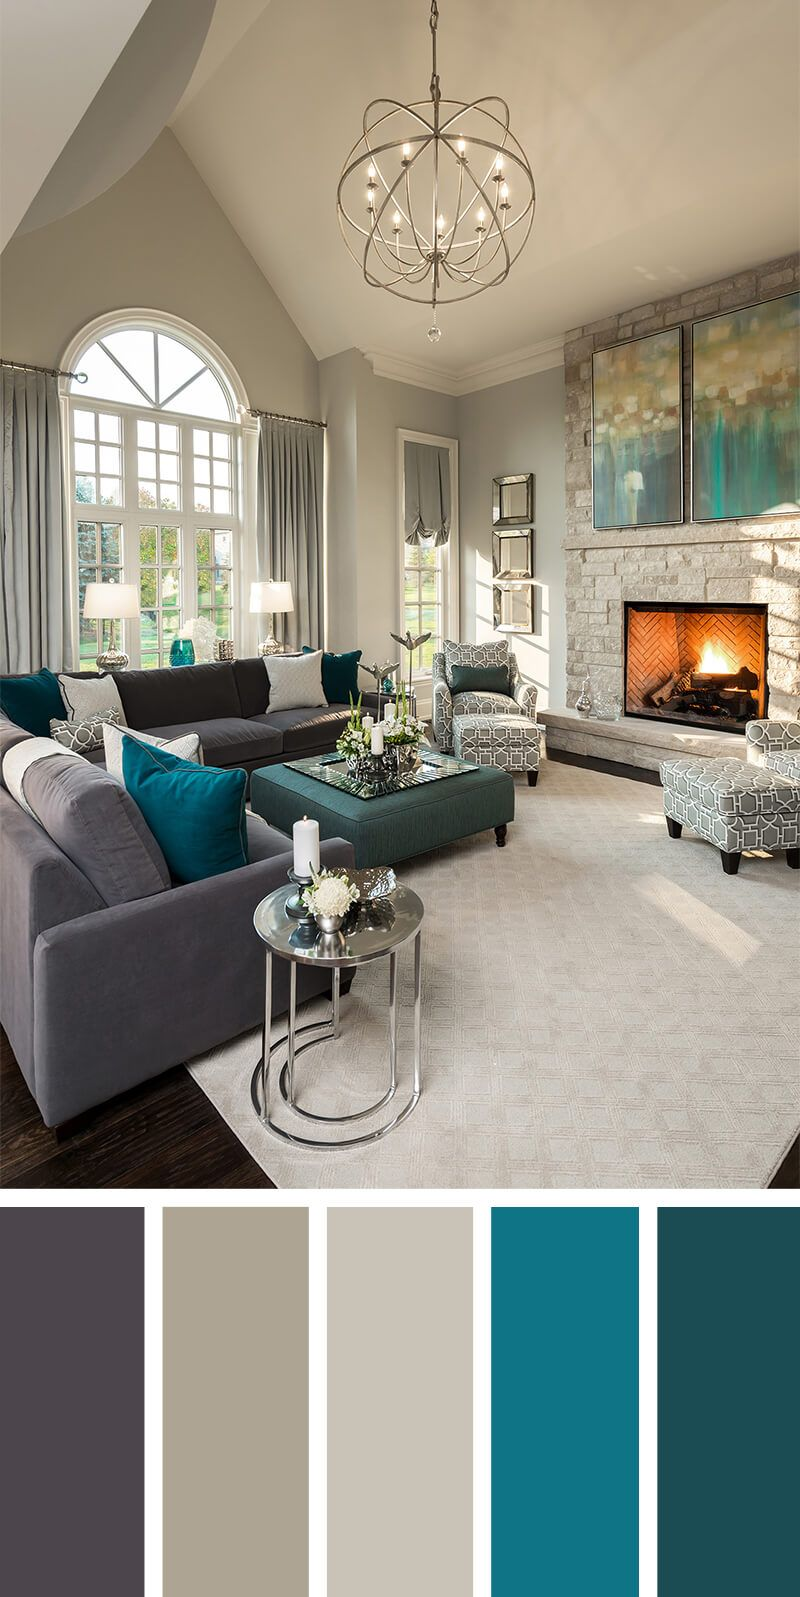 Neutral isnt boring teal living room color scheme living room decor grey couch